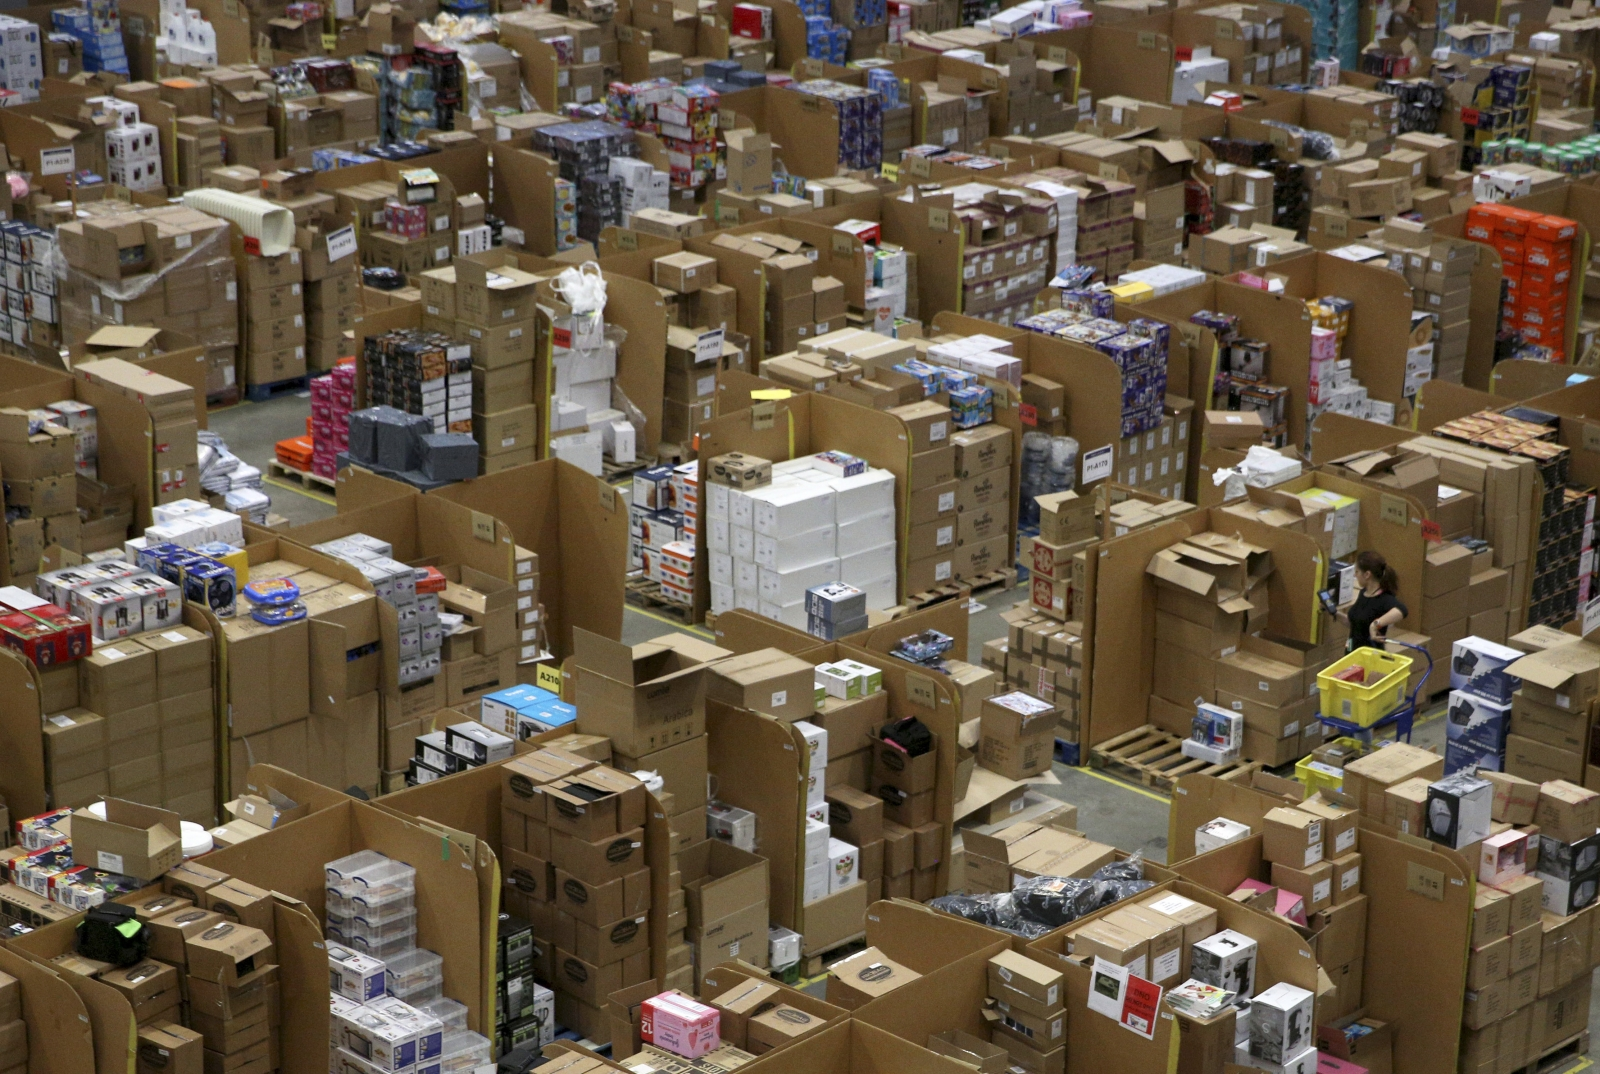 Amazon Scotland warehouse staff face threat of termination for sick leave and missing targets